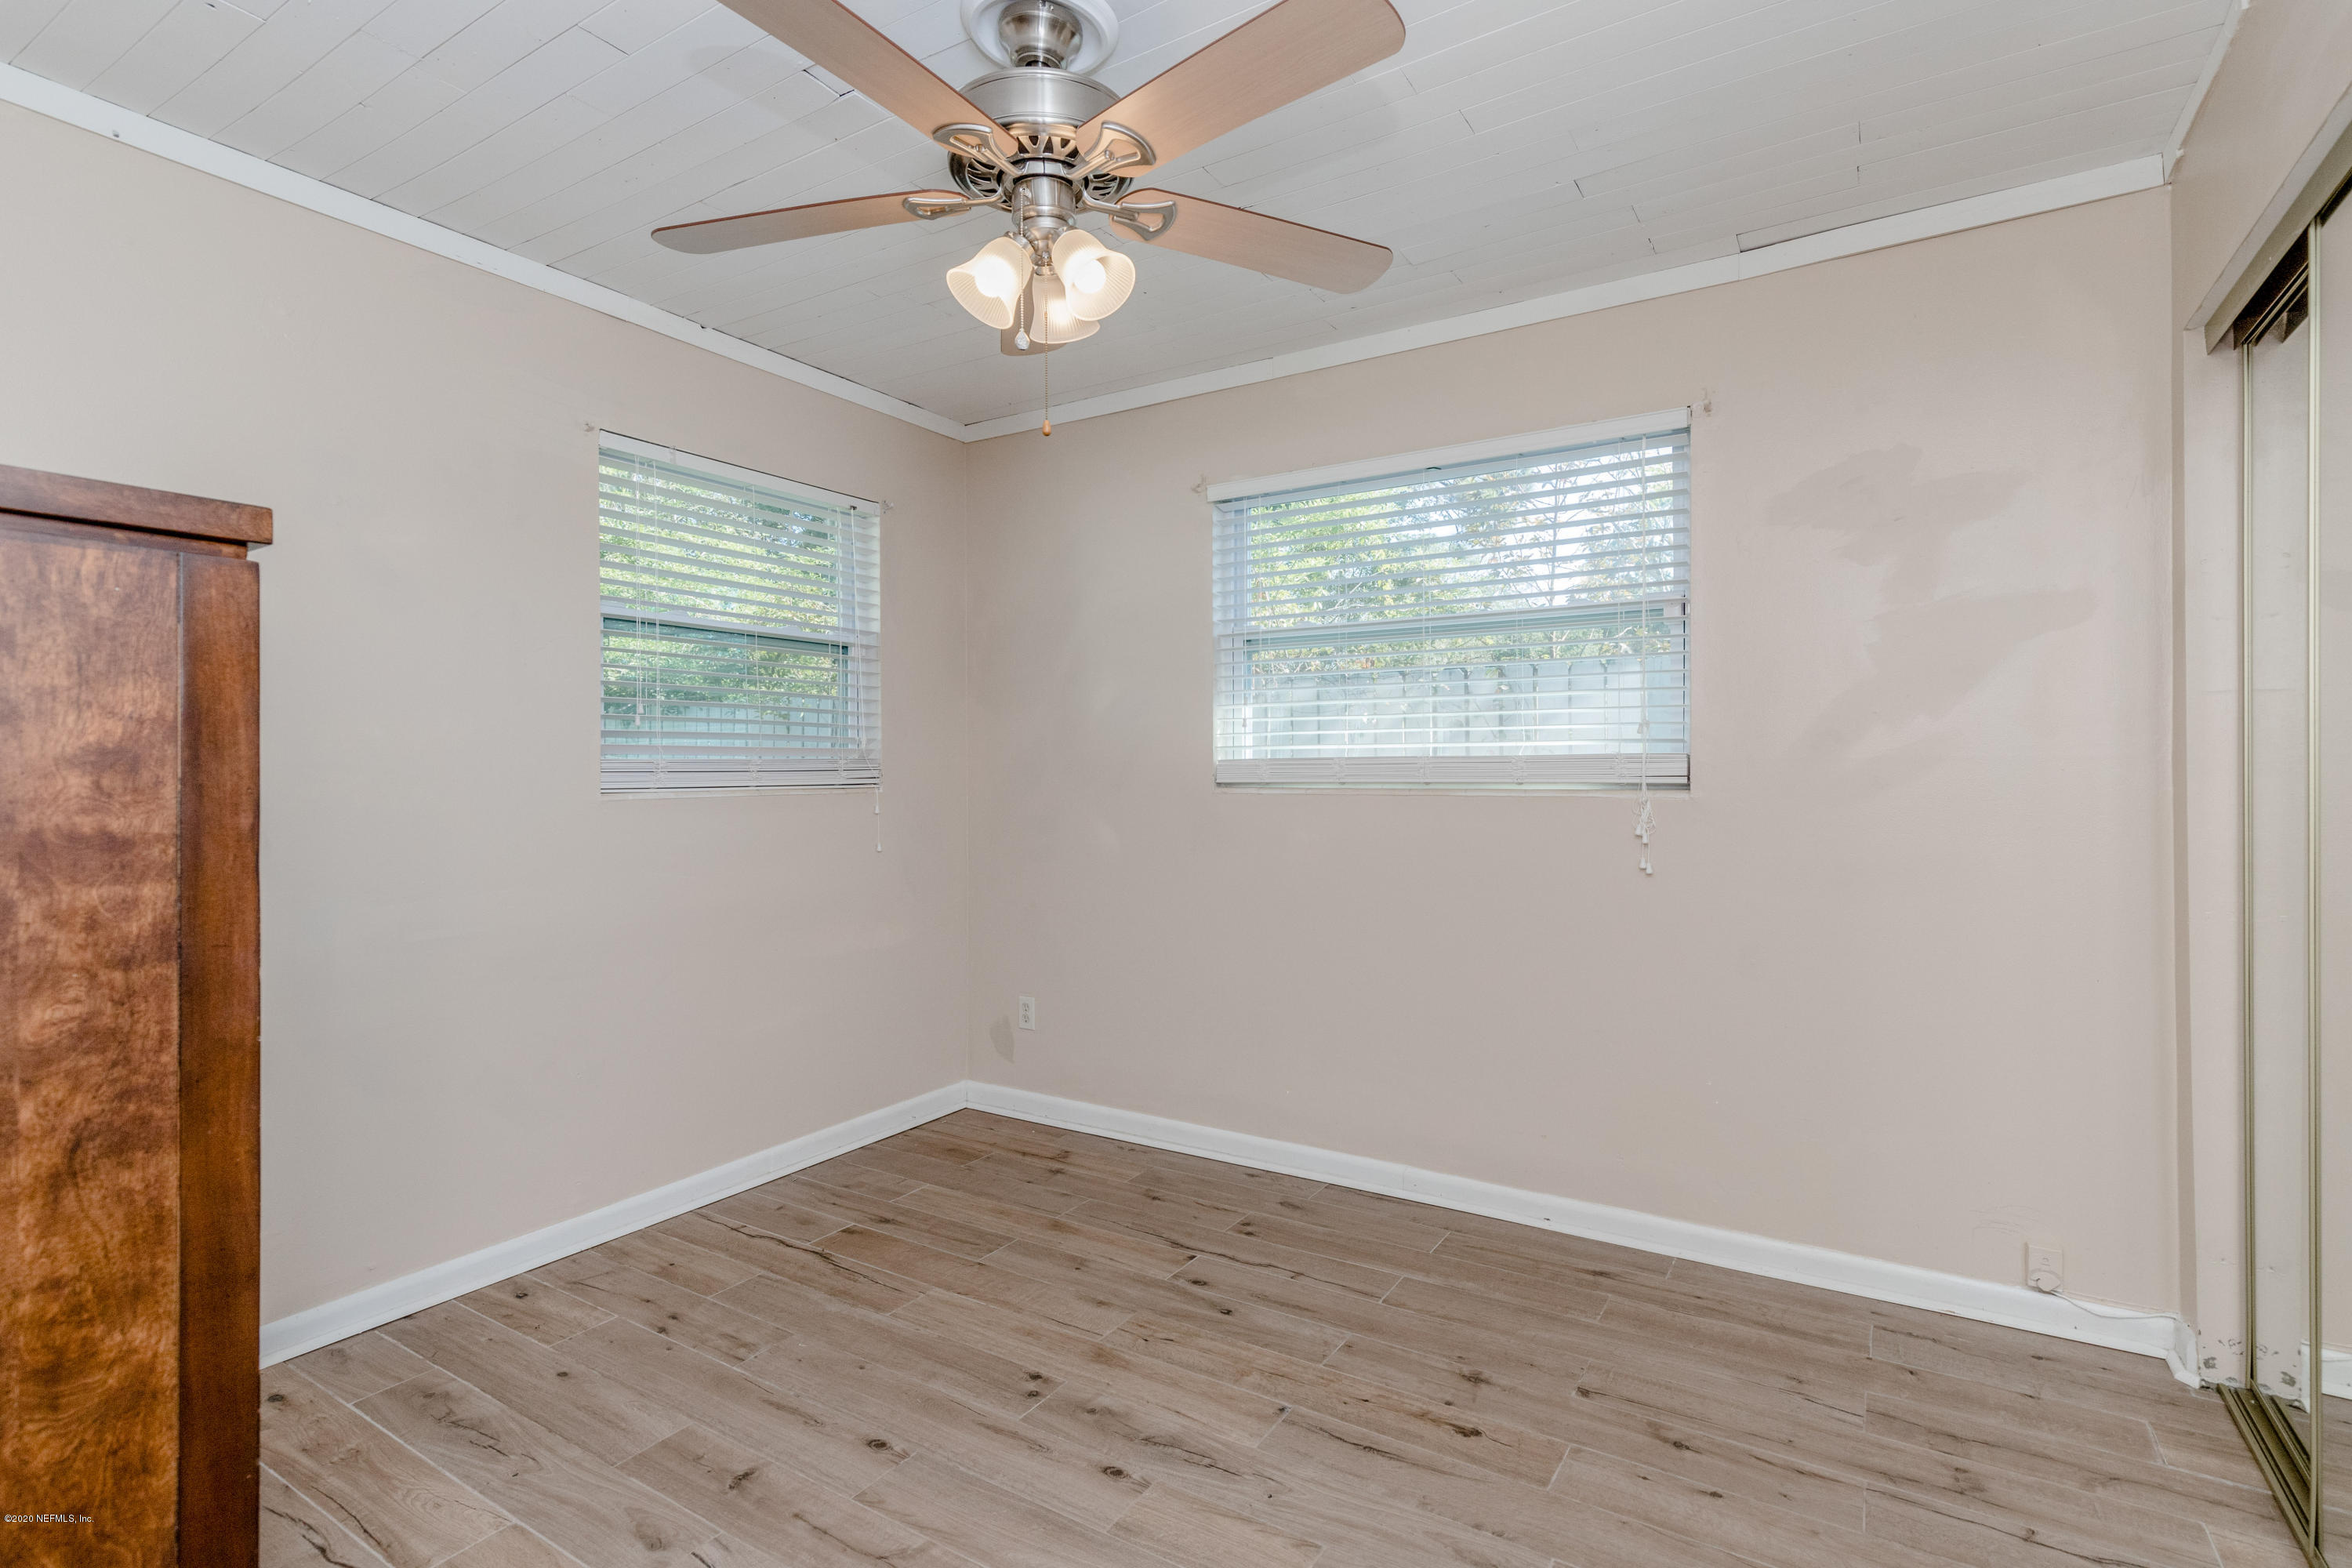 6921 ARQUES, JACKSONVILLE, FLORIDA 32205, 4 Bedrooms Bedrooms, ,2 BathroomsBathrooms,Residential,For sale,ARQUES,1080646